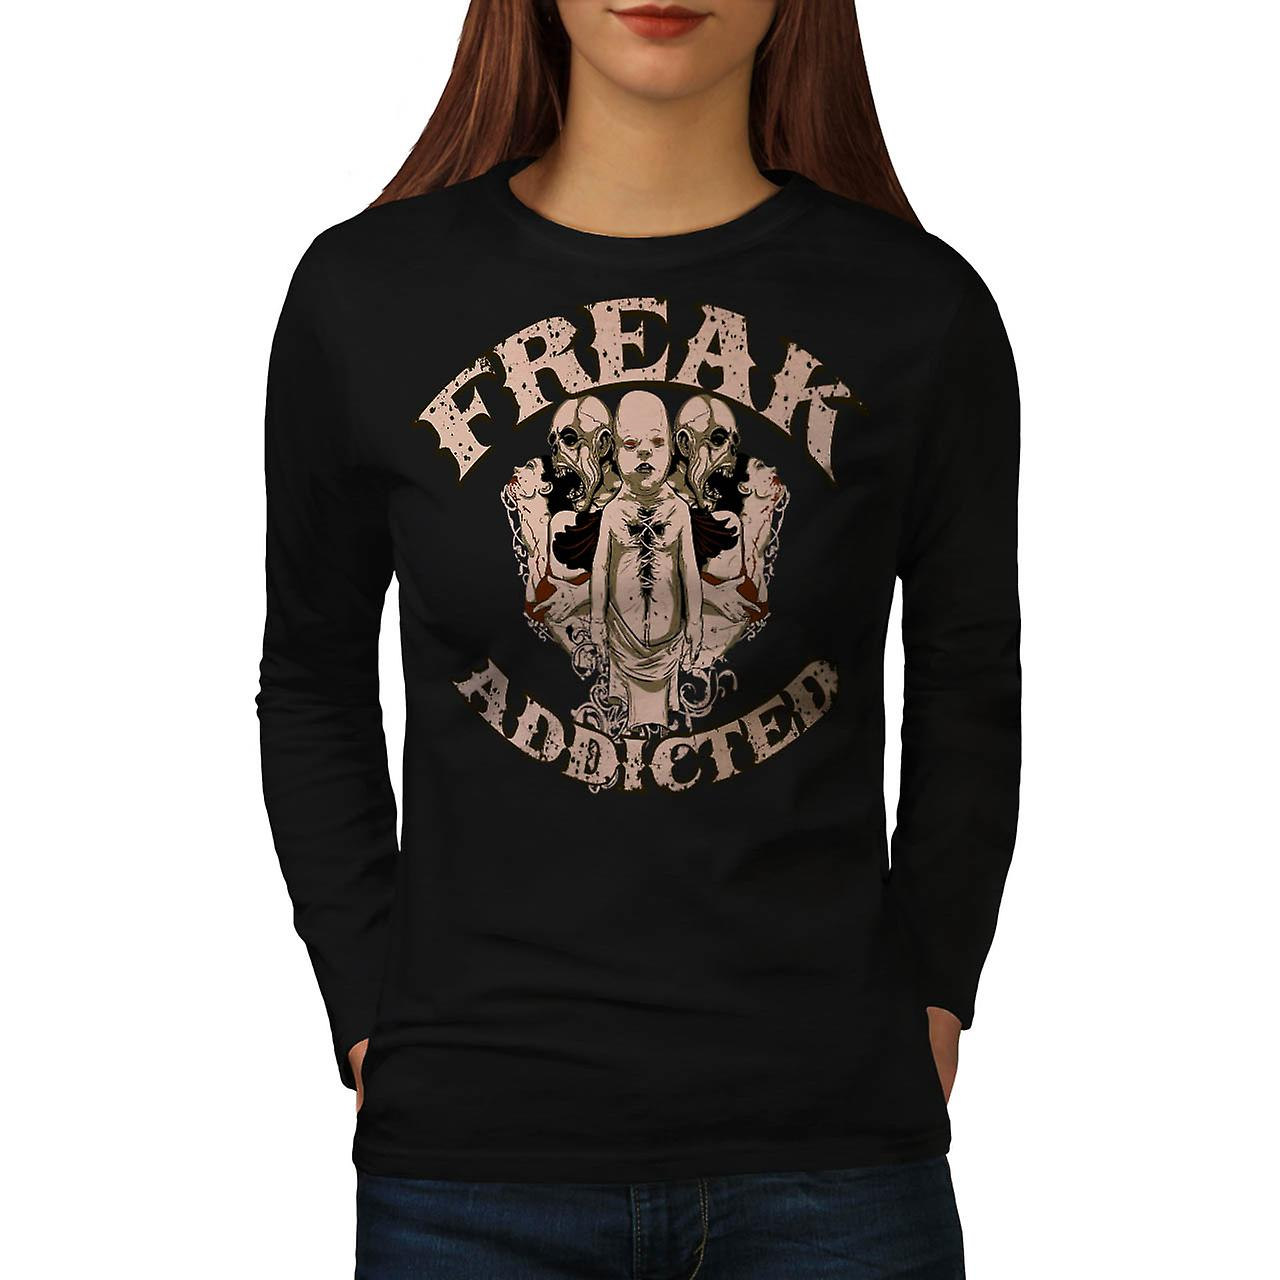 Freak Die Addict Baby Ghost Kids Women Black Long Sleeve T-shirt | Wellcoda